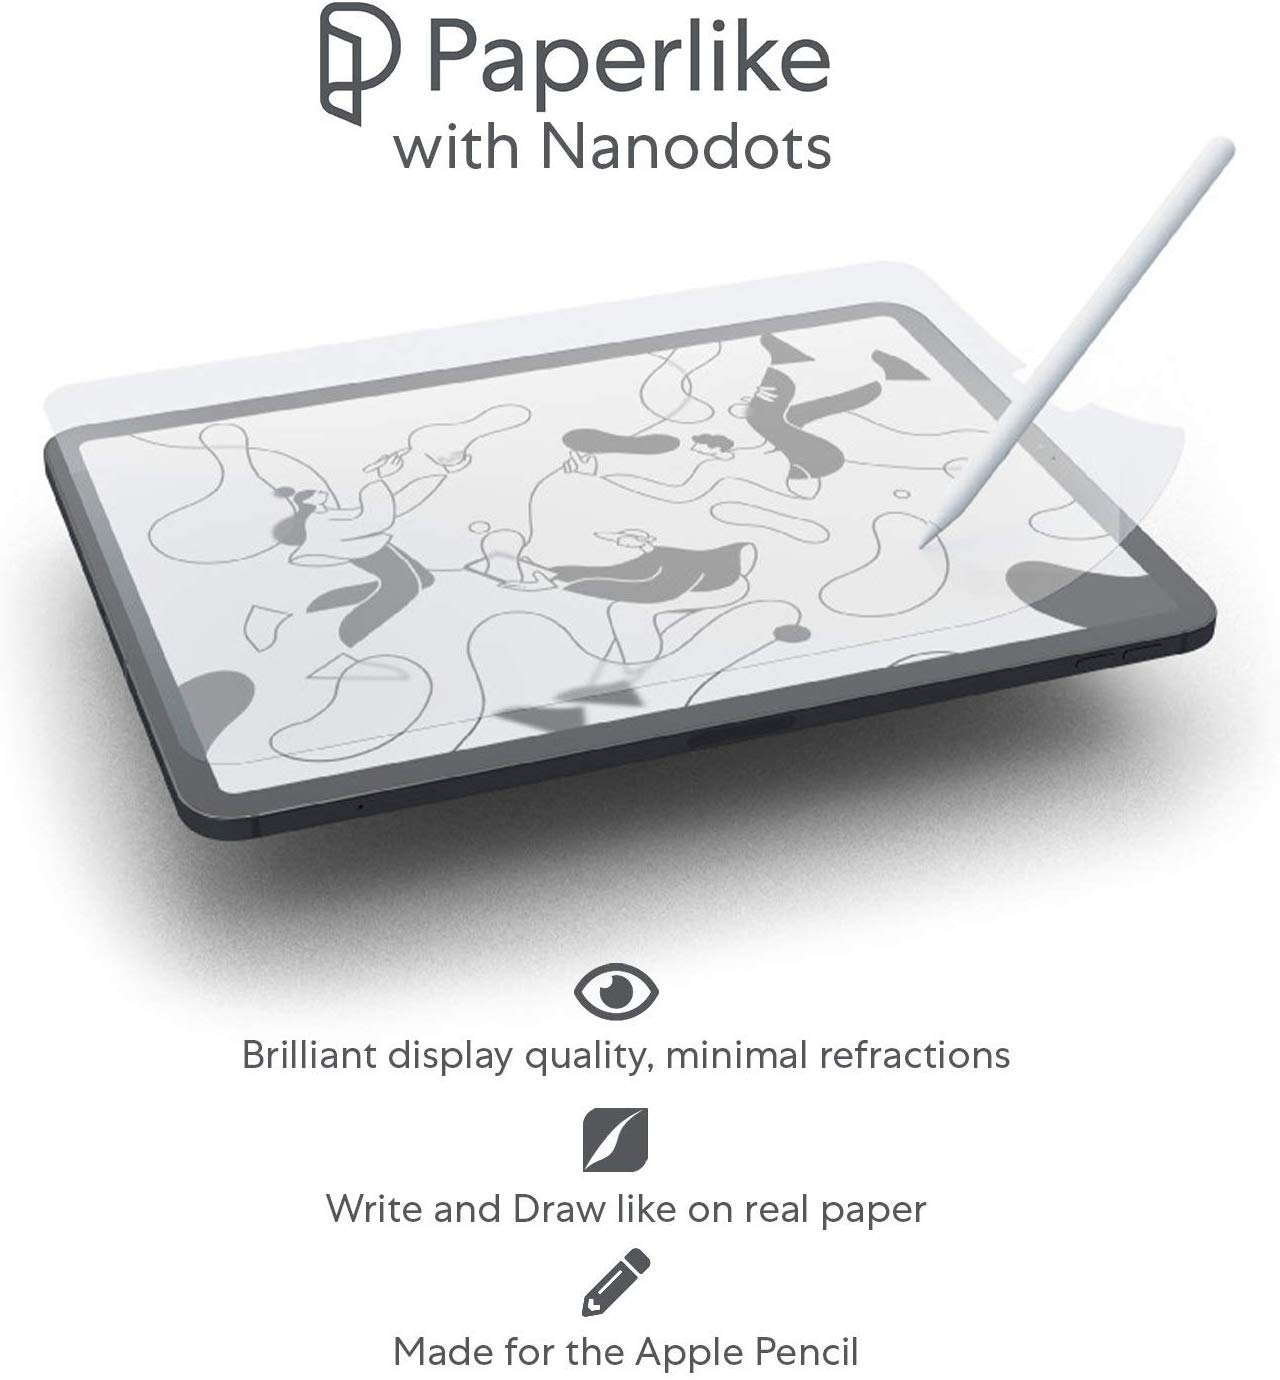 11-inch Two-Pack iPad Screen Protector for iPad PRO Draw And Write with Your Apple Pencil Like on Paper 2018 PaperLike with Nanodots